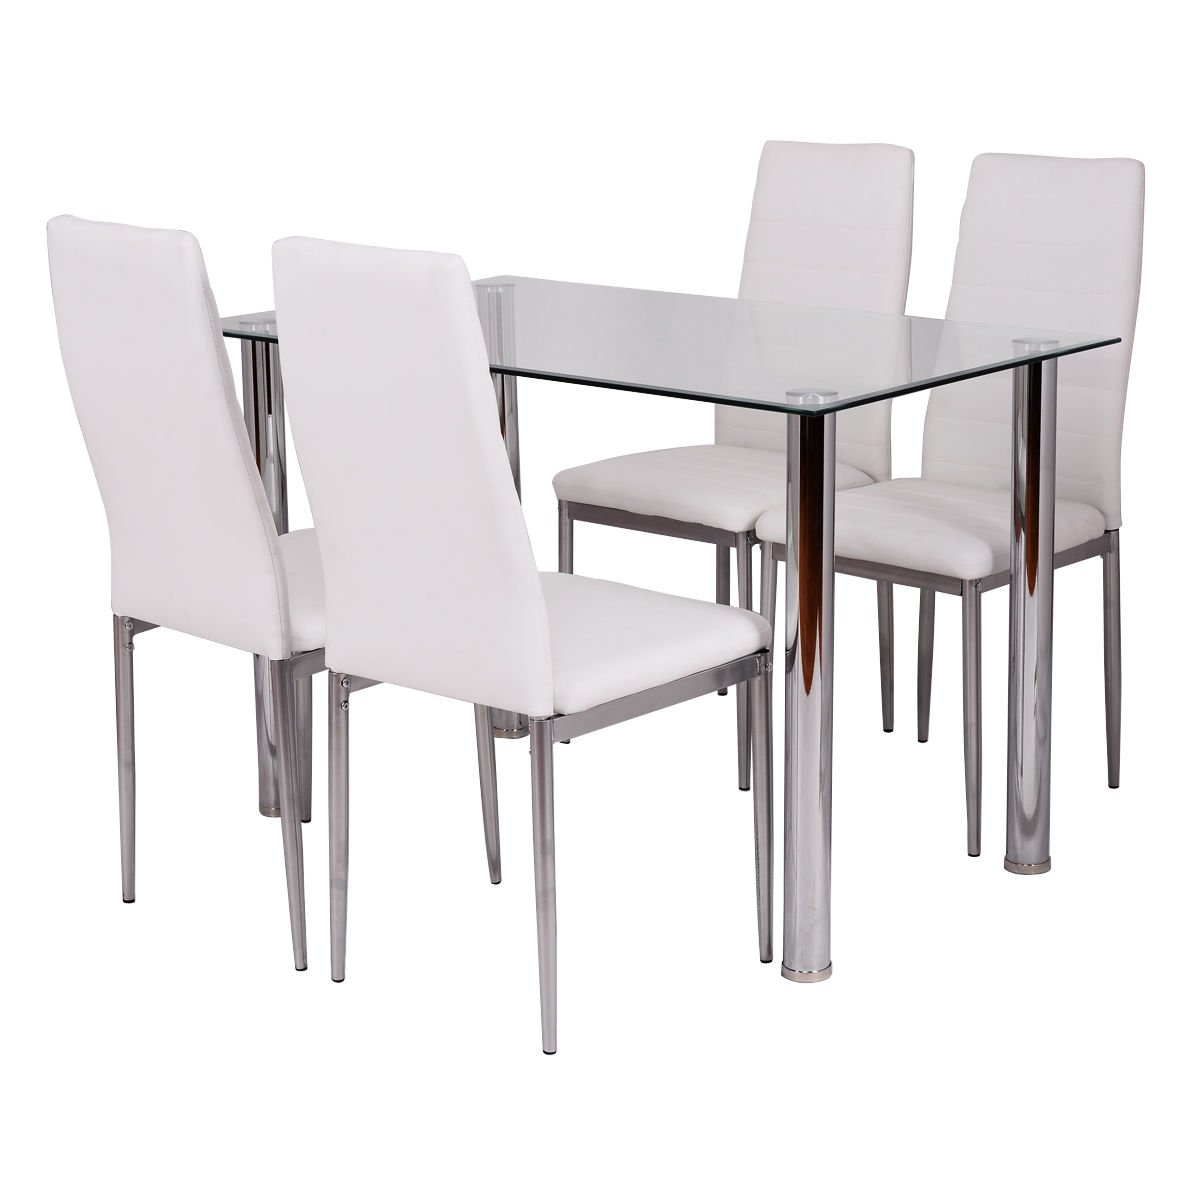 Tangkula 5 PCS Dining Table Set Glass Table and Metal Chairs Home Dinette Furniture (White)